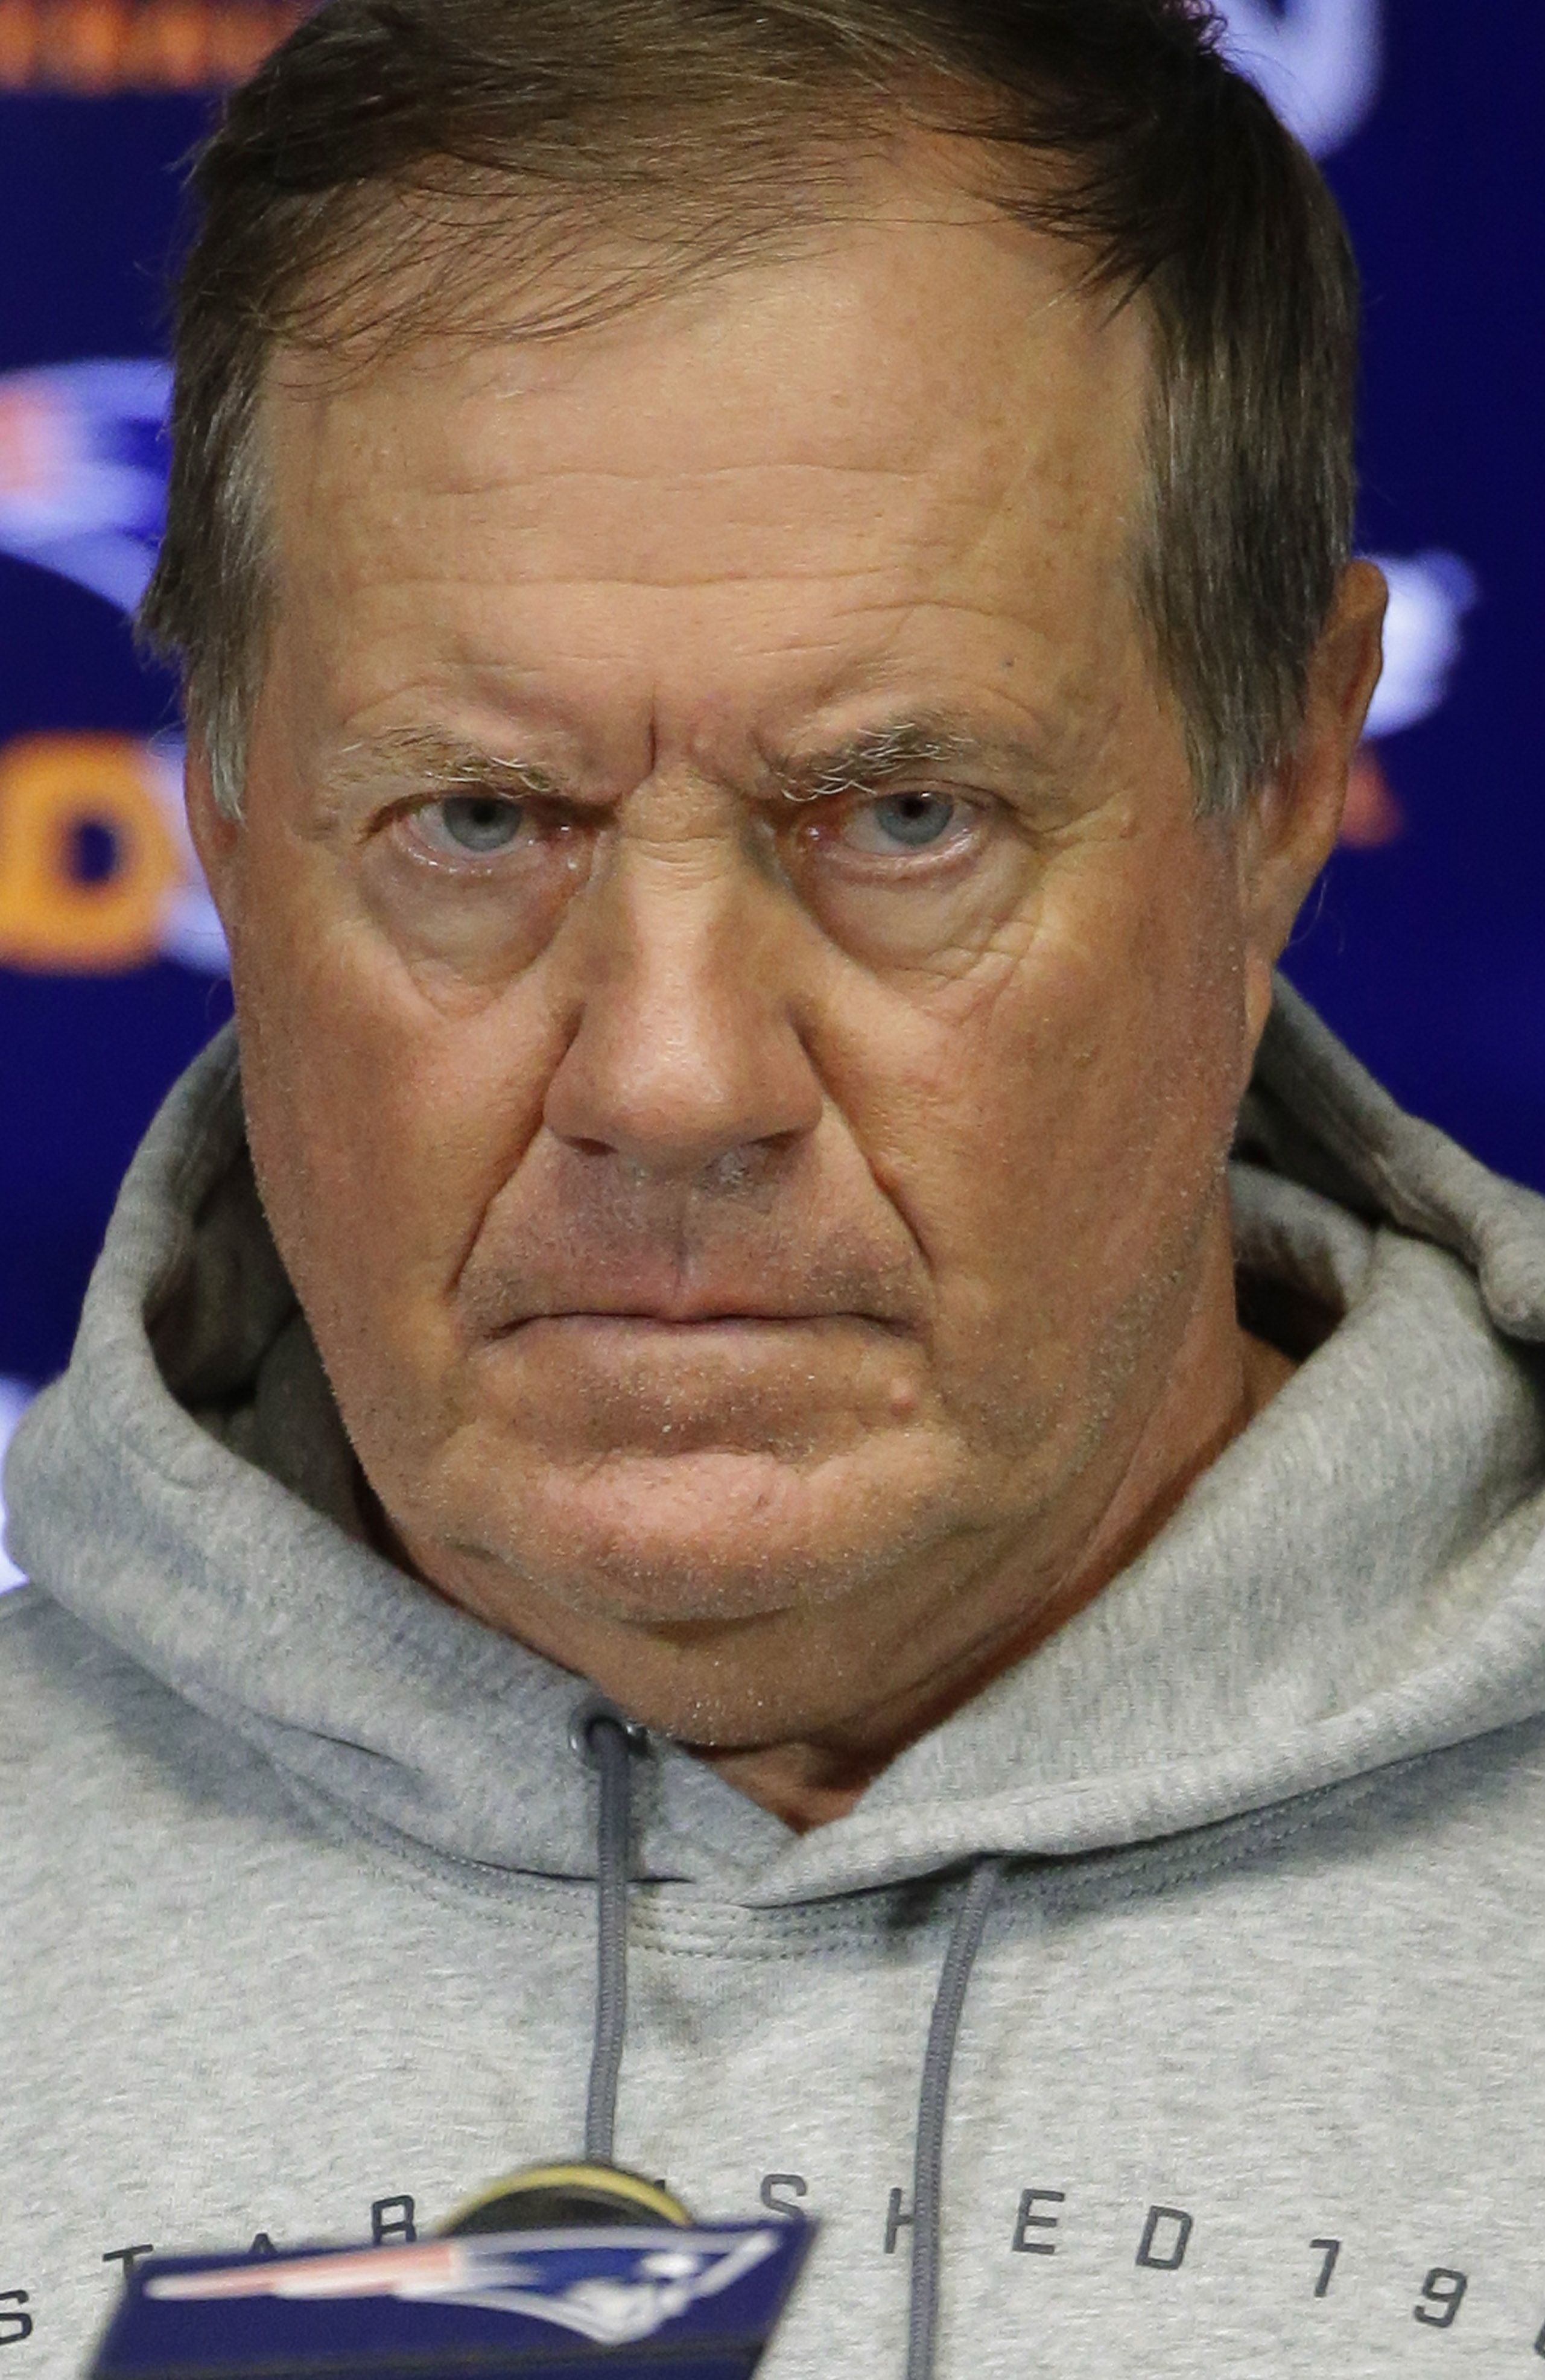 New England Patriots head coach Bill Belichick refuses to answer reporter's questions concerning NFL Commissioner Roger Goodell's action upholding New England Patriots quarterback Tom Brady's four game deflated footballs suspension during an NFL football